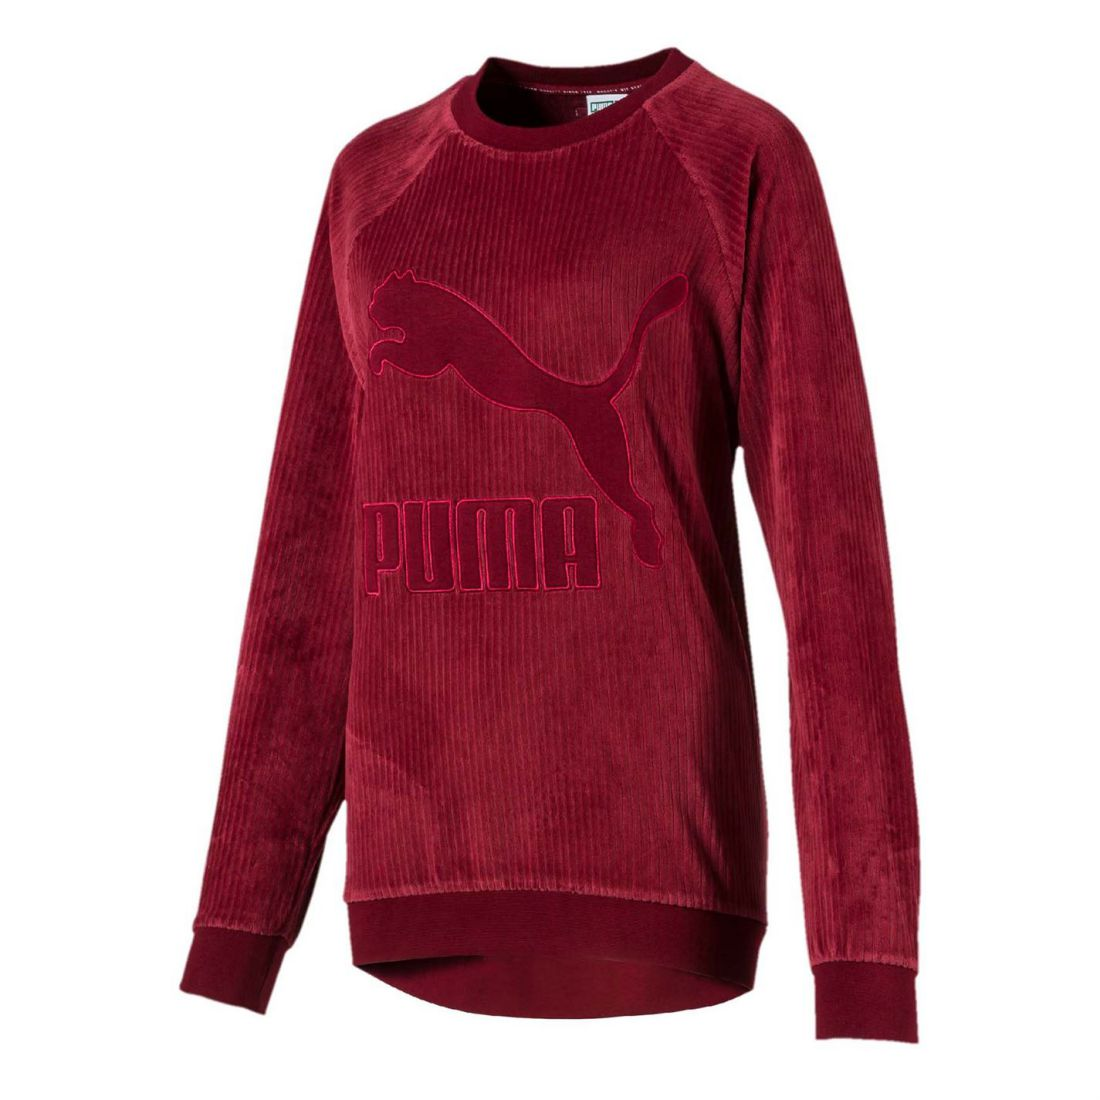 49f4f84986 Details about Womens Puma Downtown Crew Neck Sweatshirt Sweater Long Sleeve  New